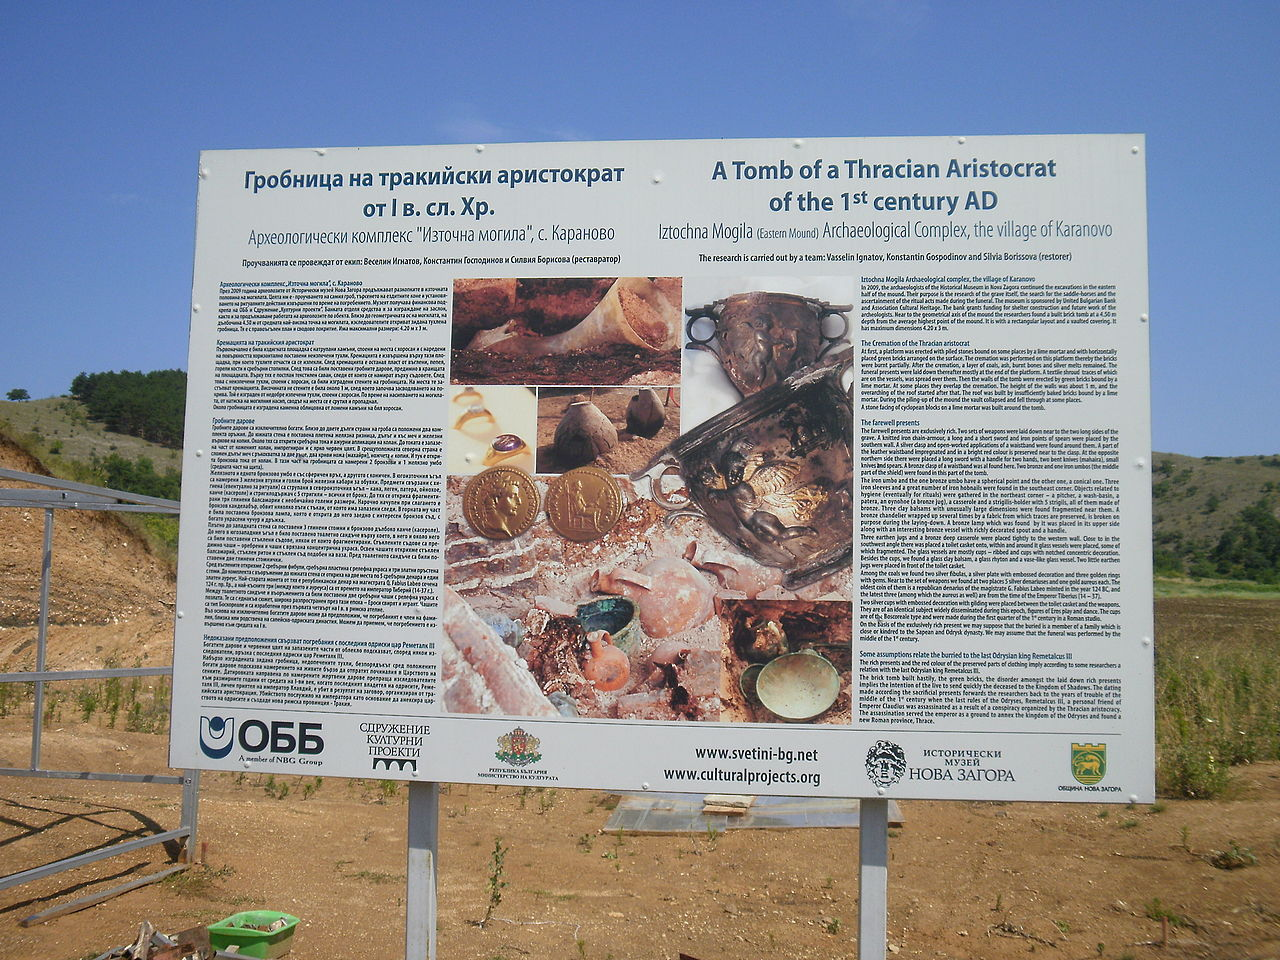 JW_SIGP_LABELS_08 01-Eastern_mound_Karanovo-2011-02.jpg